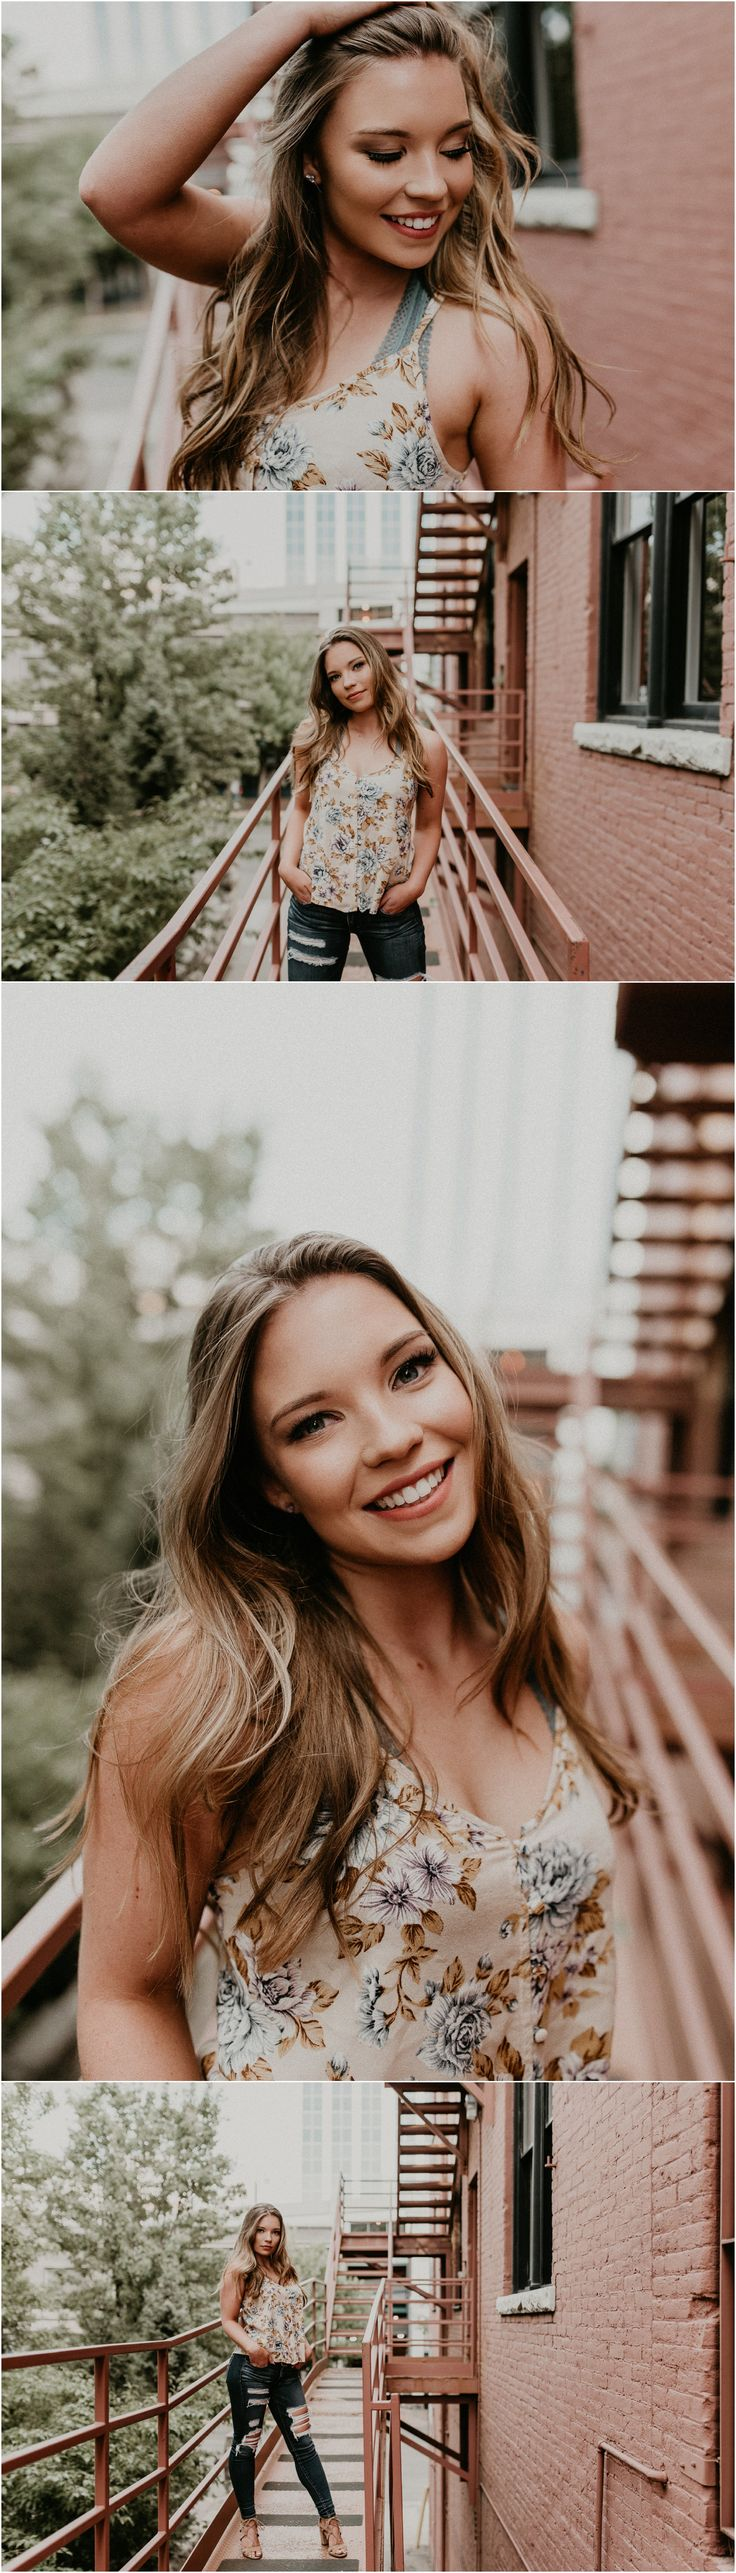 Makayla Madden Photography // Boise Senior Photographer // Senior Pictures // Downtown Boise // Dancing Portraits // Dancing Senior Pictures Outfit Ideas and Inspiration // Urban Fall Senior Pictures // Senior Photography // Senior Photographer // Posing Ideas //